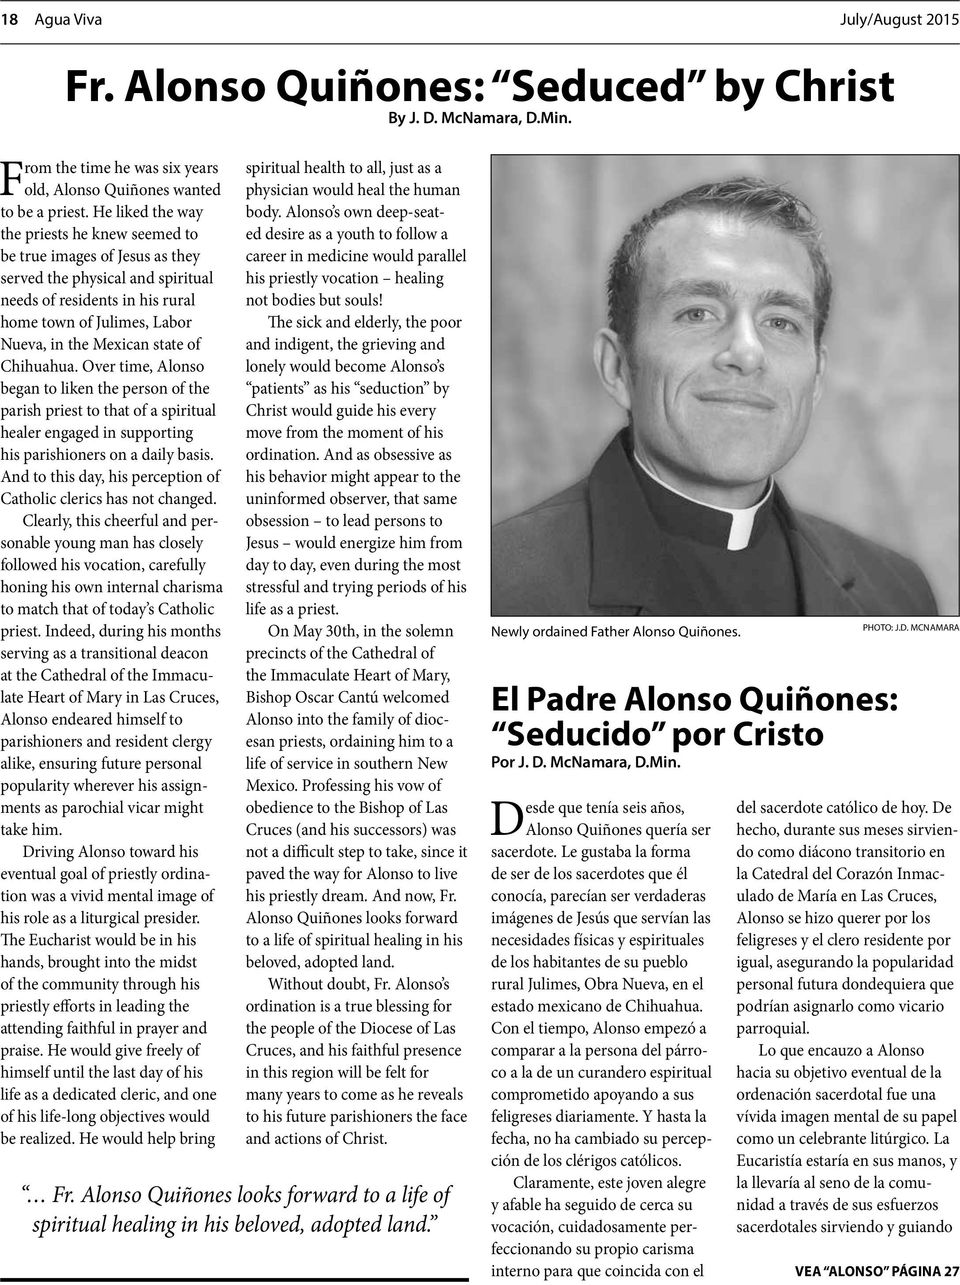 state of Chihuahua. Over time, Alonso began to liken the person of the parish priest to that of a spiritual healer engaged in supporting his parishioners on a daily basis.